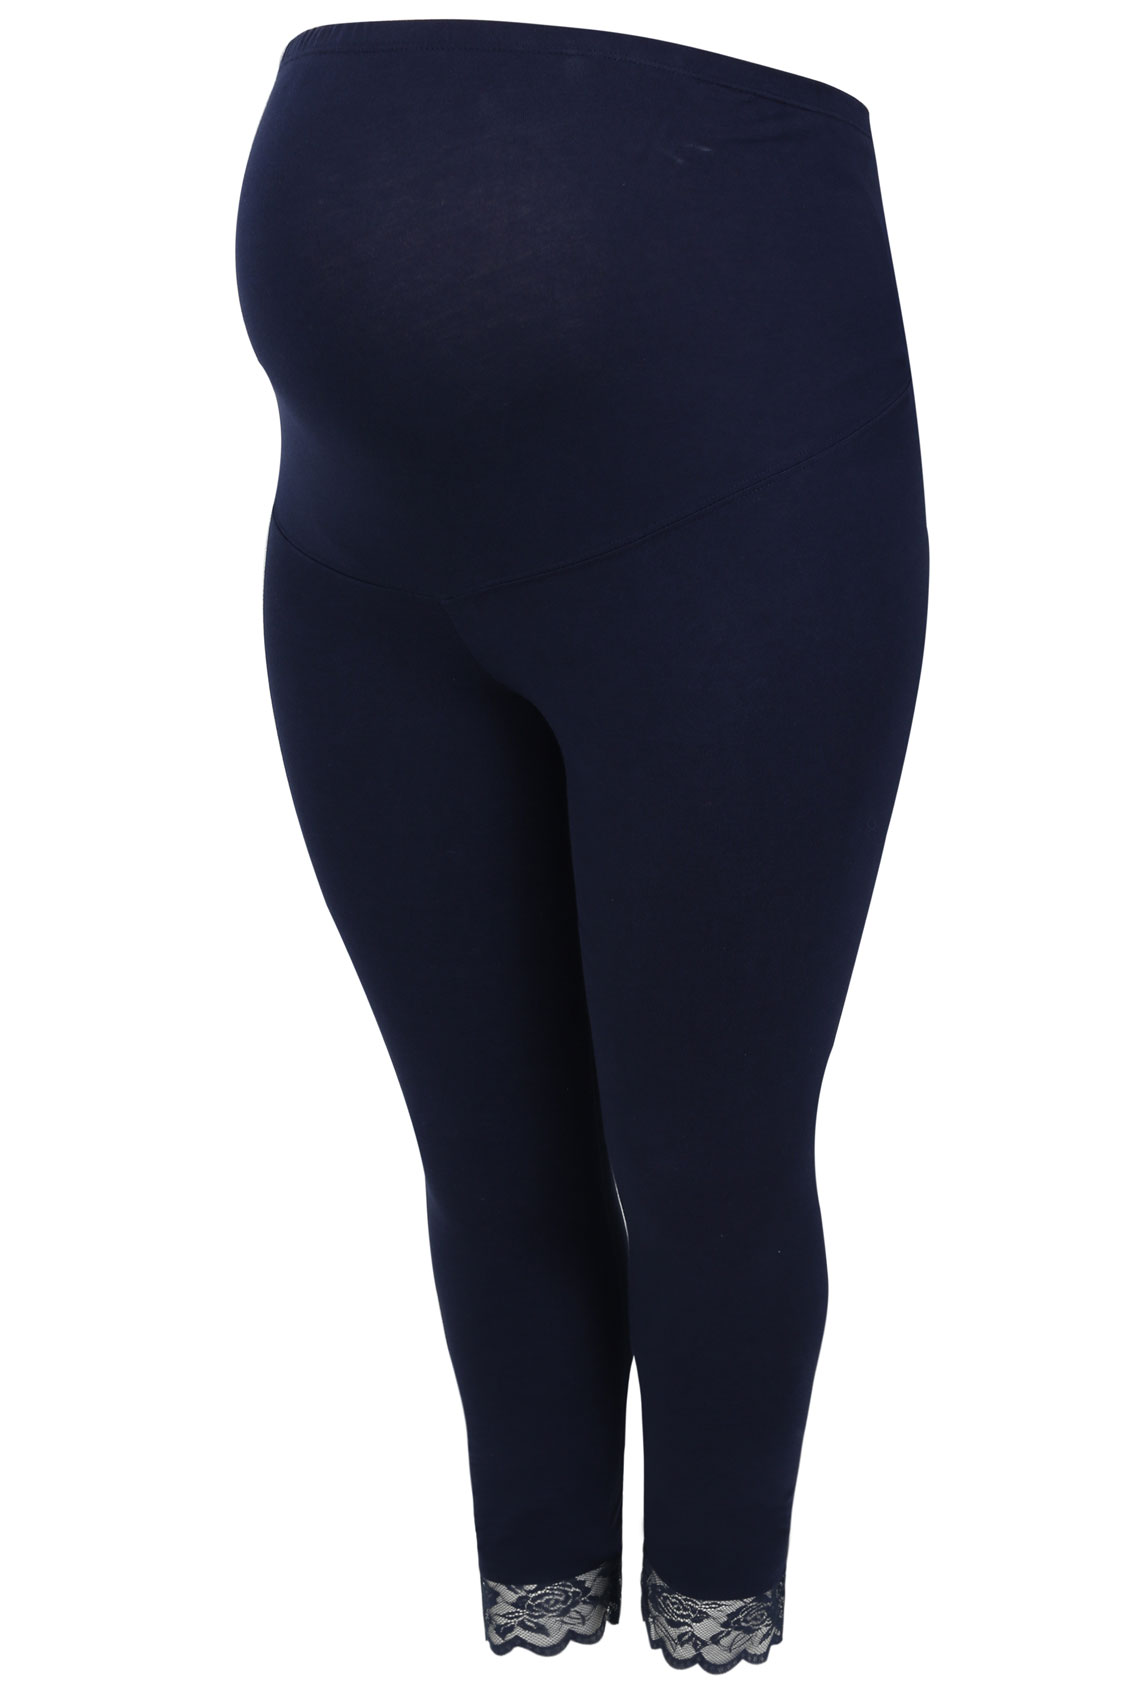 booking terms and conditions template - bump it maternity legging navy 3 4 avec bordure dentelle